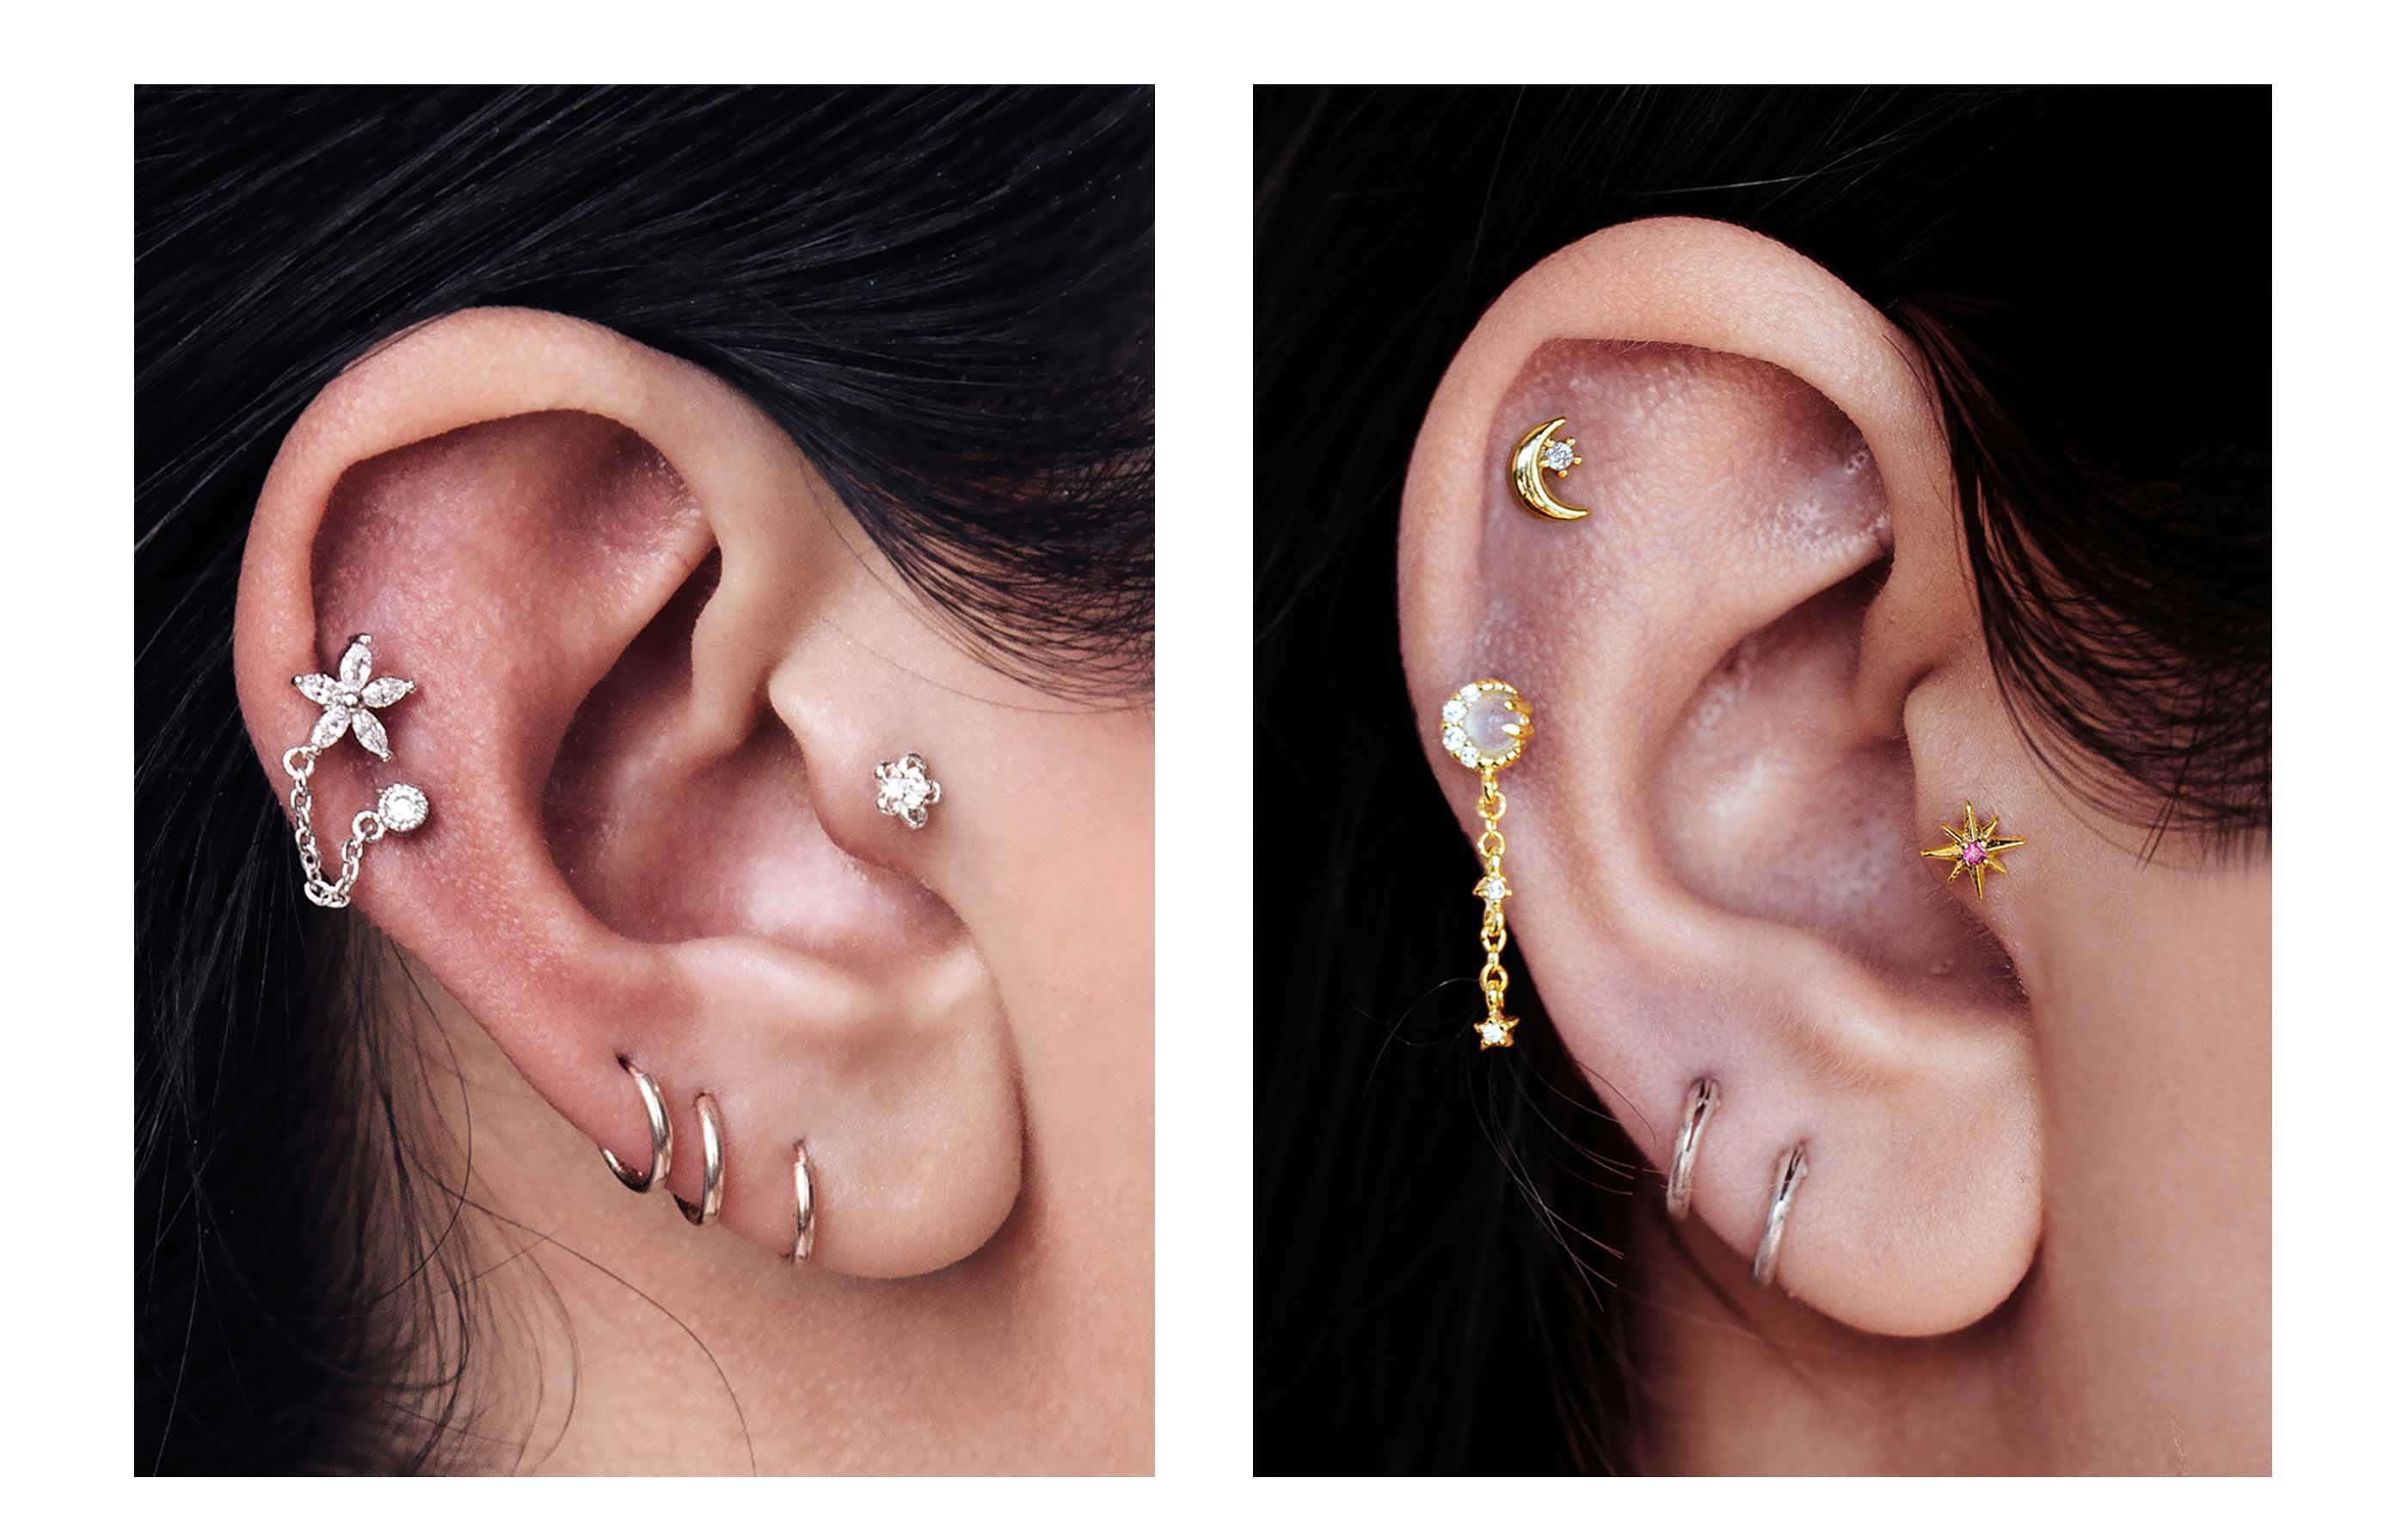 Helix Piercing Inspirations